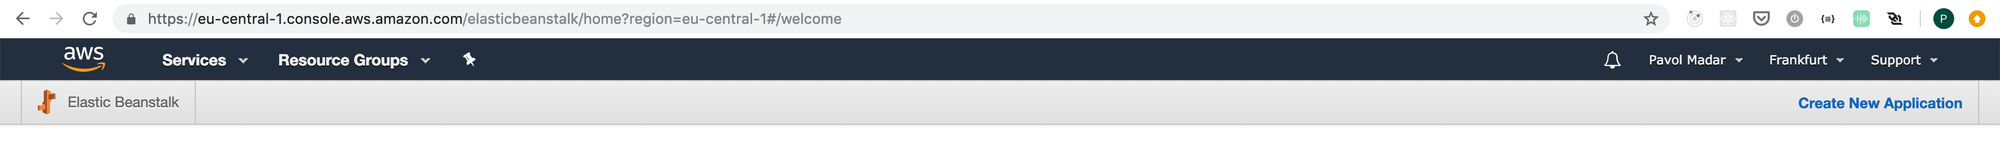 AWS console - region select in top bar